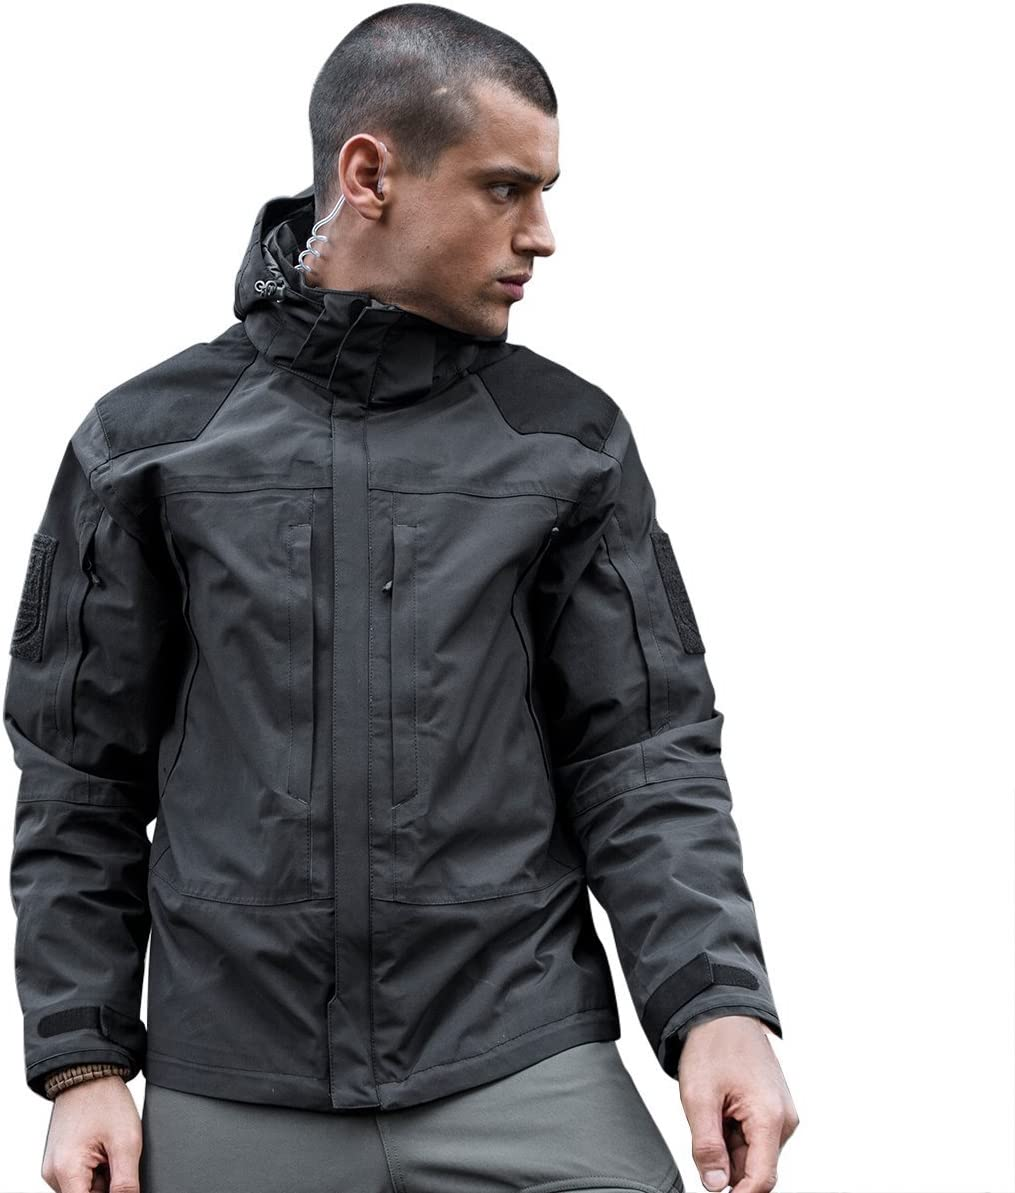 FREE SOLDIER Houston Mall Outdoor Men's 3 in Resistant Water Breatha Virginia Beach Mall Jacket 1